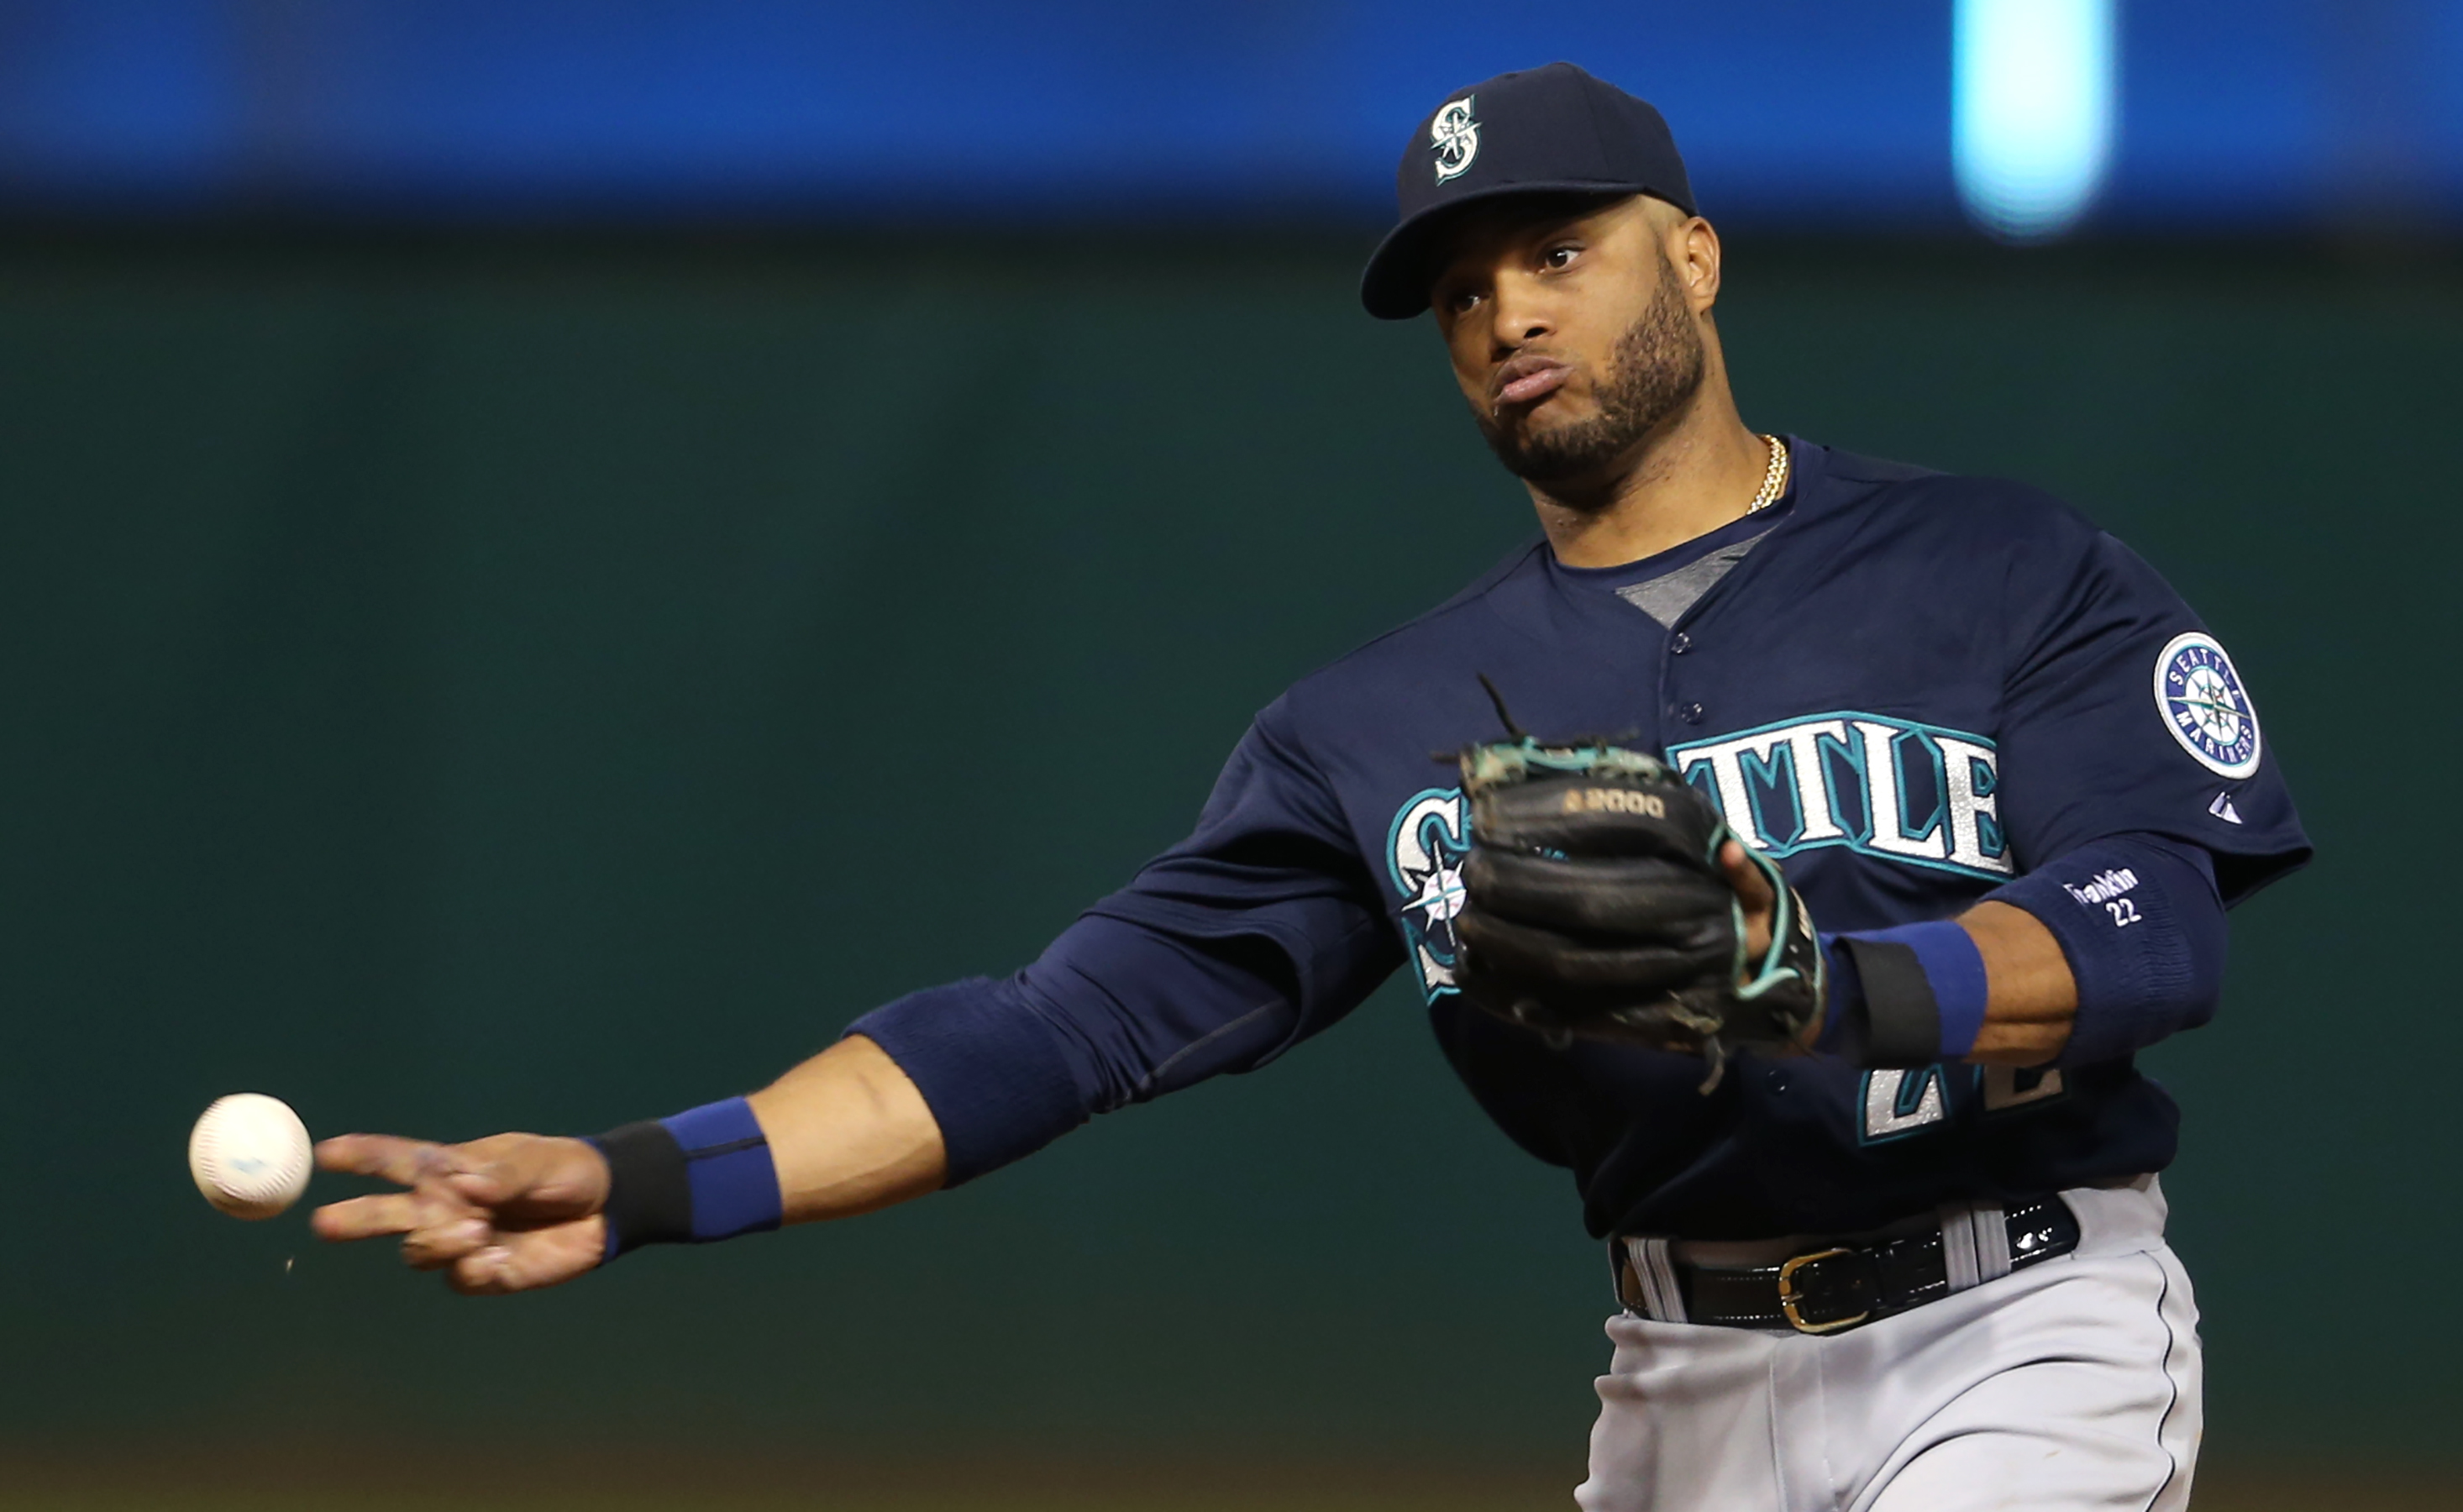 Seattle Mariners' Robinson Cano throws out Cleveland Indians' Mike Aviles at first base during the seventh inning of a baseball game, Tuesday, June 9, 2015, in Cleveland. (AP Photo/Ron Schwane)